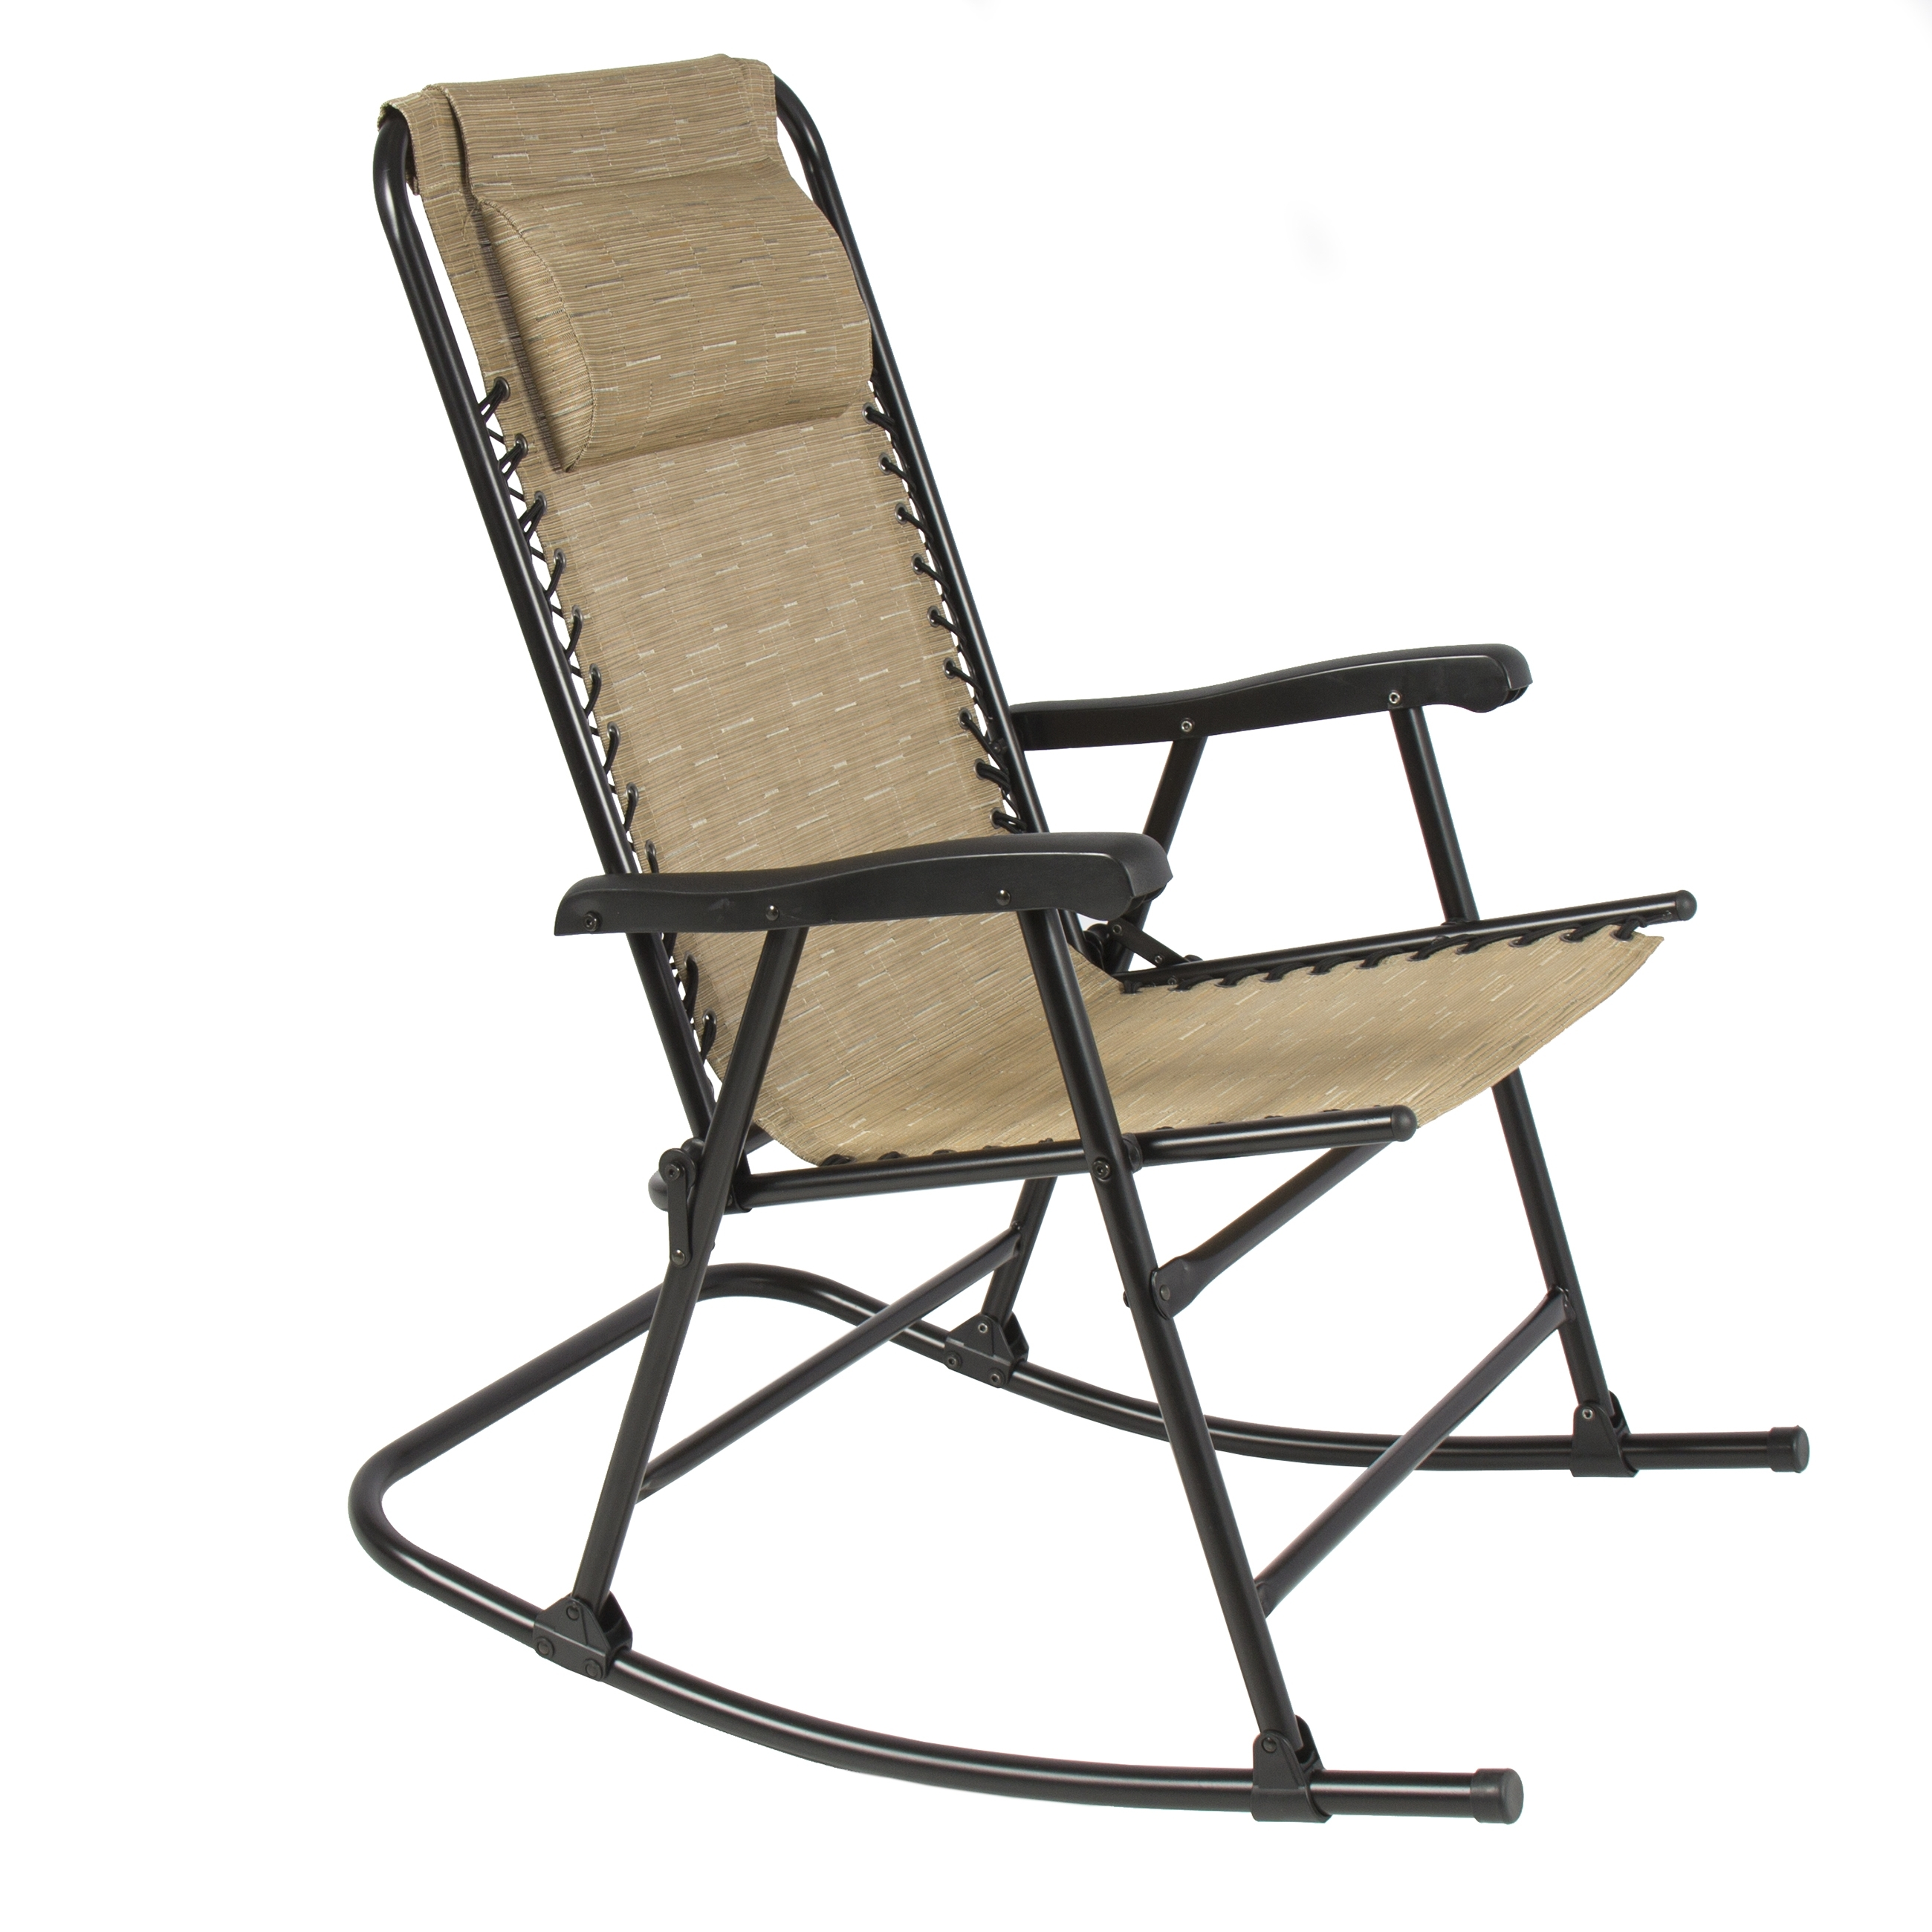 2017 Folding Rocking Chairs within Folding Rocking Chair Foldable Rocker Outdoor Patio Furniture Beige